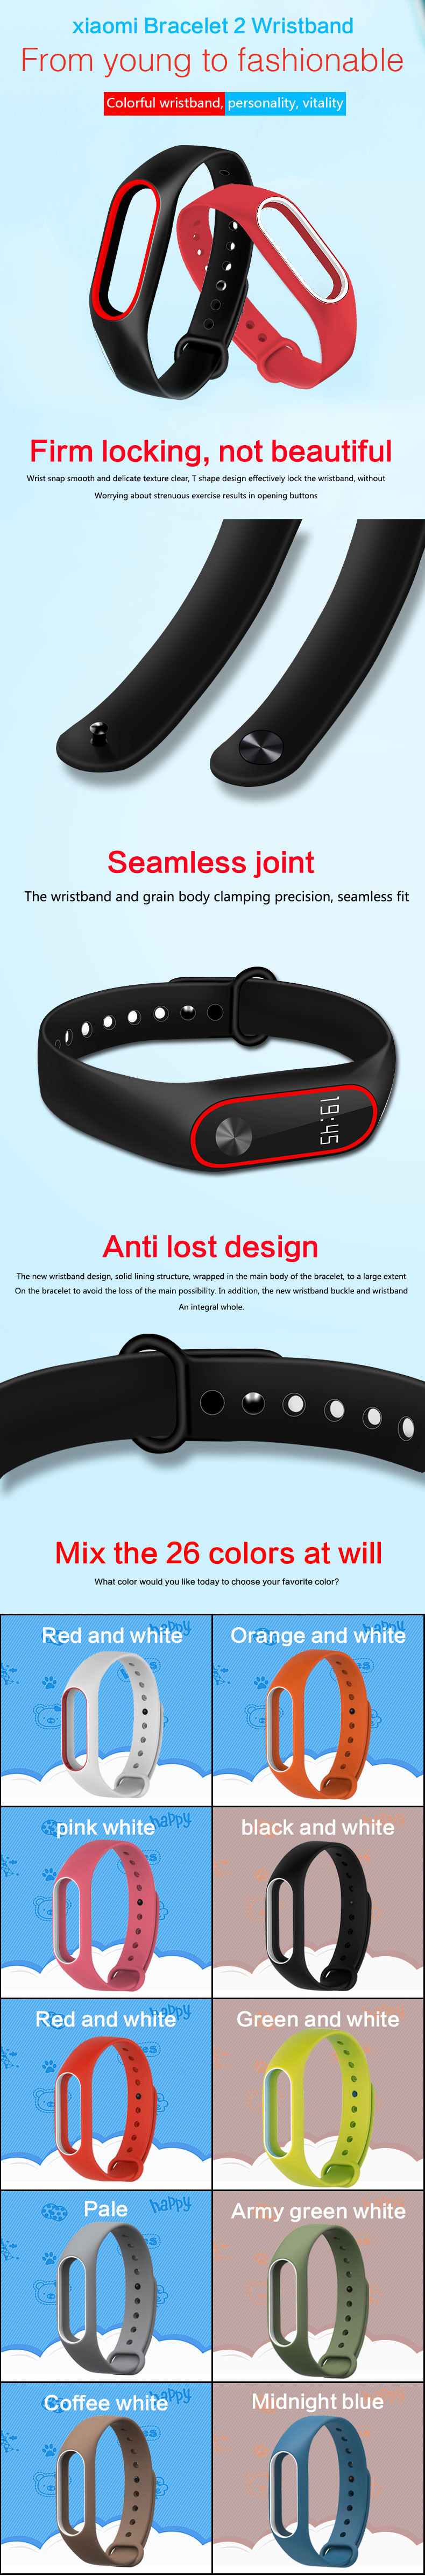 Replacement Tpu Wrist Band For Xiaomi Mi 2 Red White Free Original Black Screen Guard Pcs Only Fit Not The 1st Generation Smart Bracelet Psthe Sensor Include